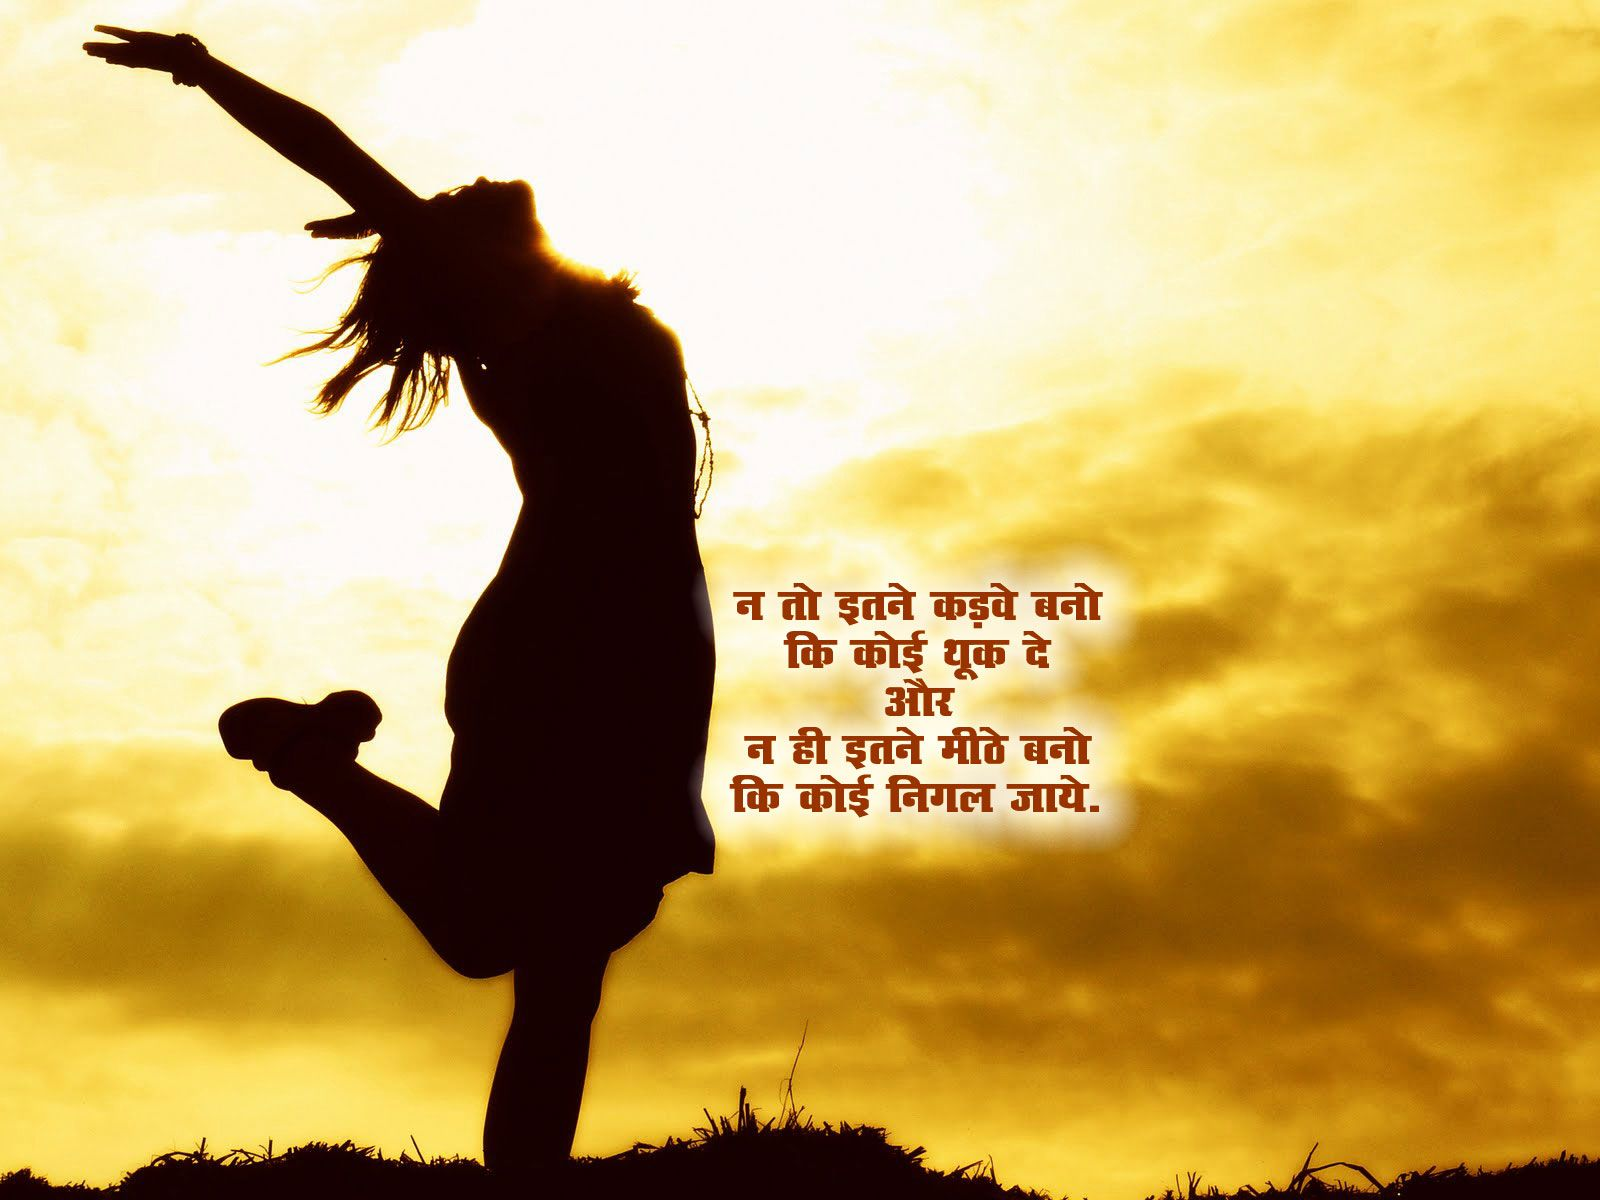 Inspirational Quotes Wallpapers in Hindi Inspirational